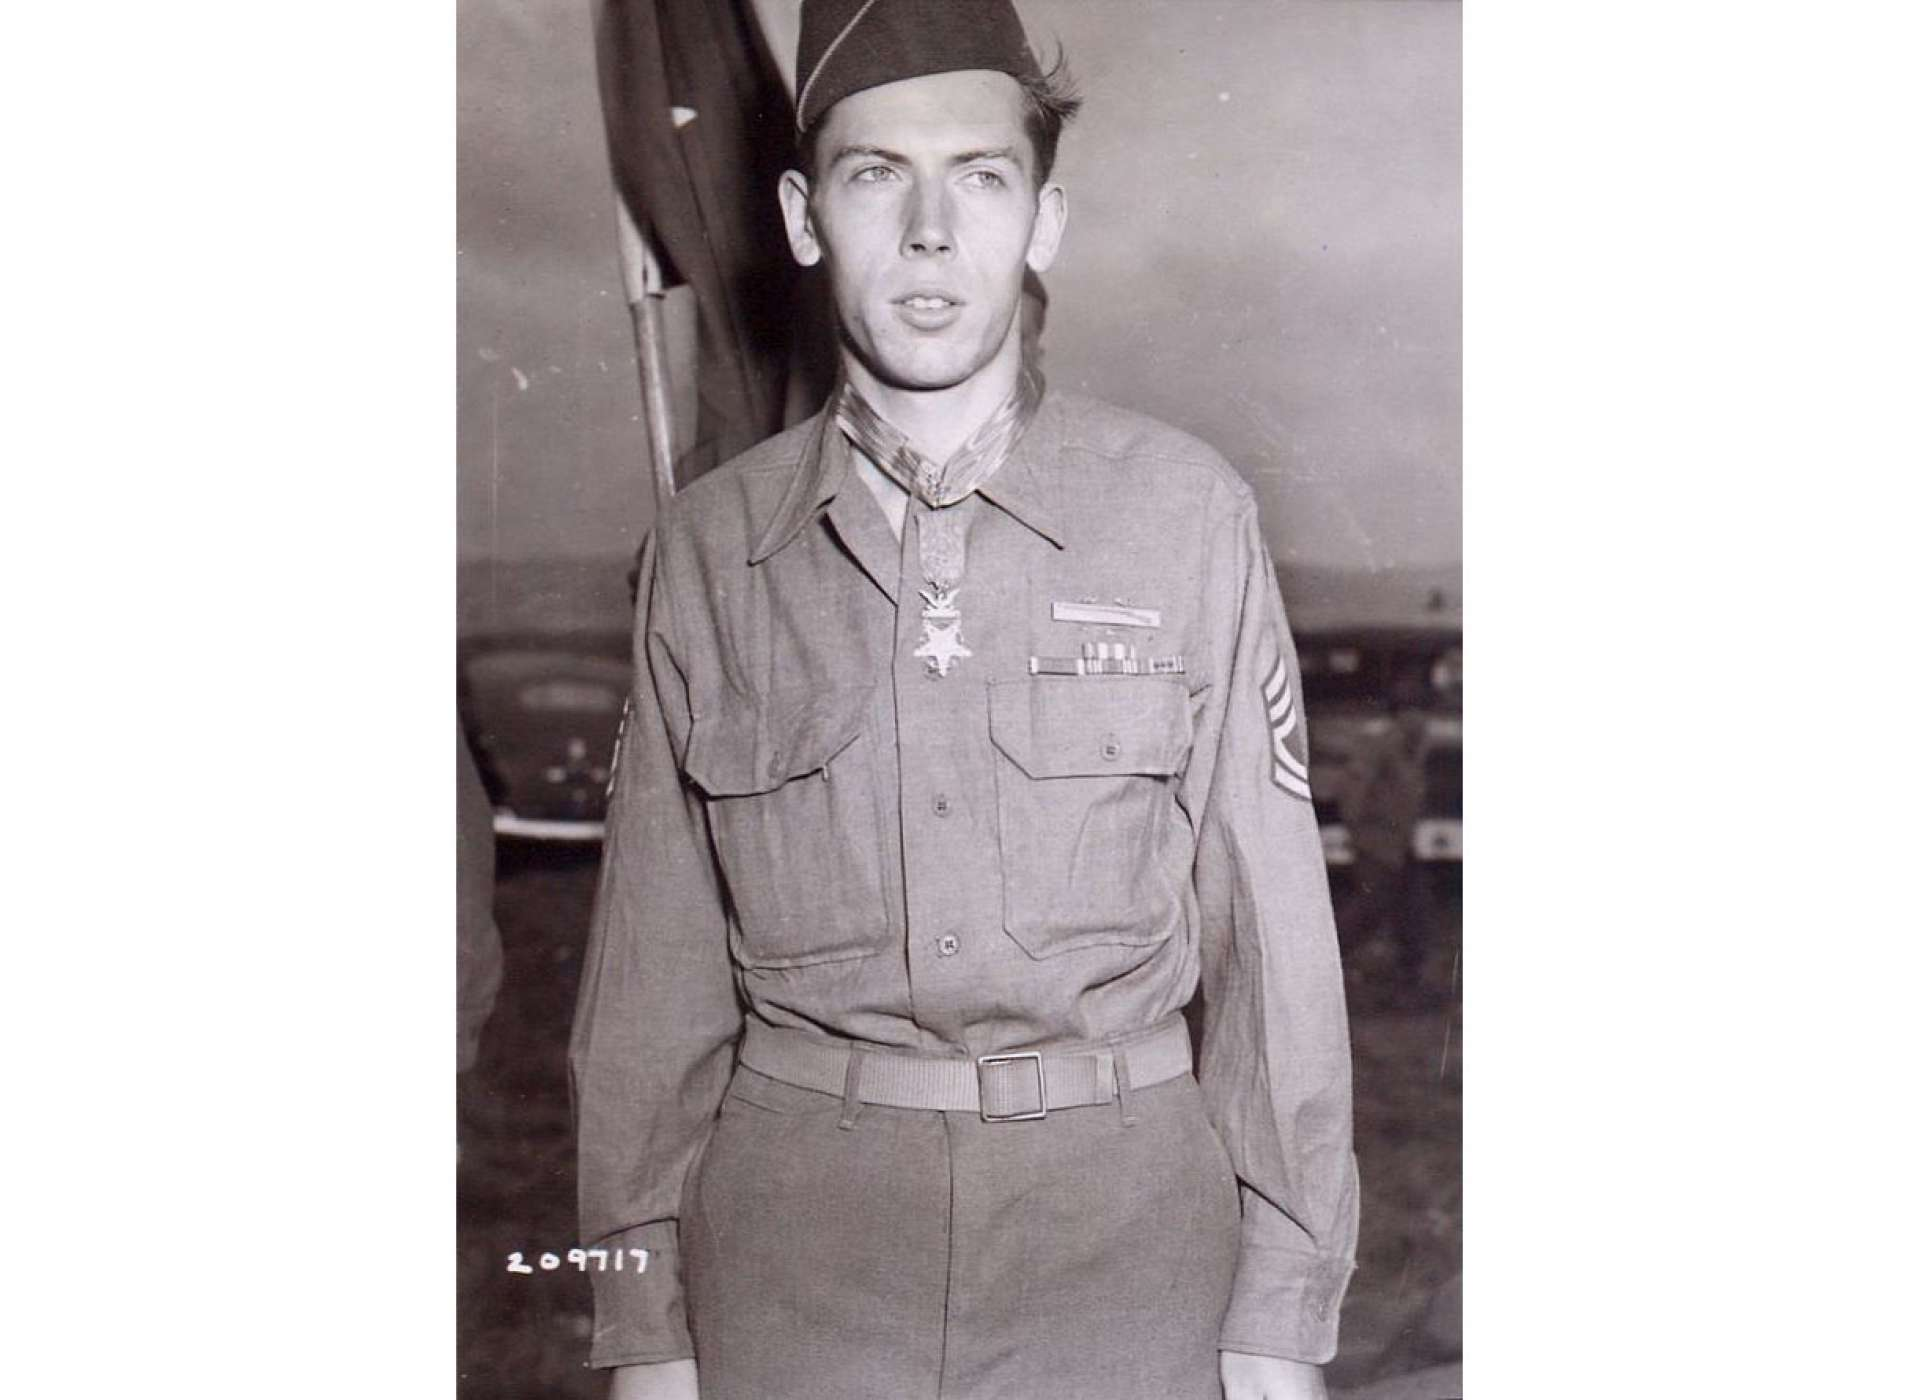 Sergeant Francis S. Currey, 3rd Battalion, 120th Infantry Regiment, 30th Infantry Division, Medal of Honor recipient.